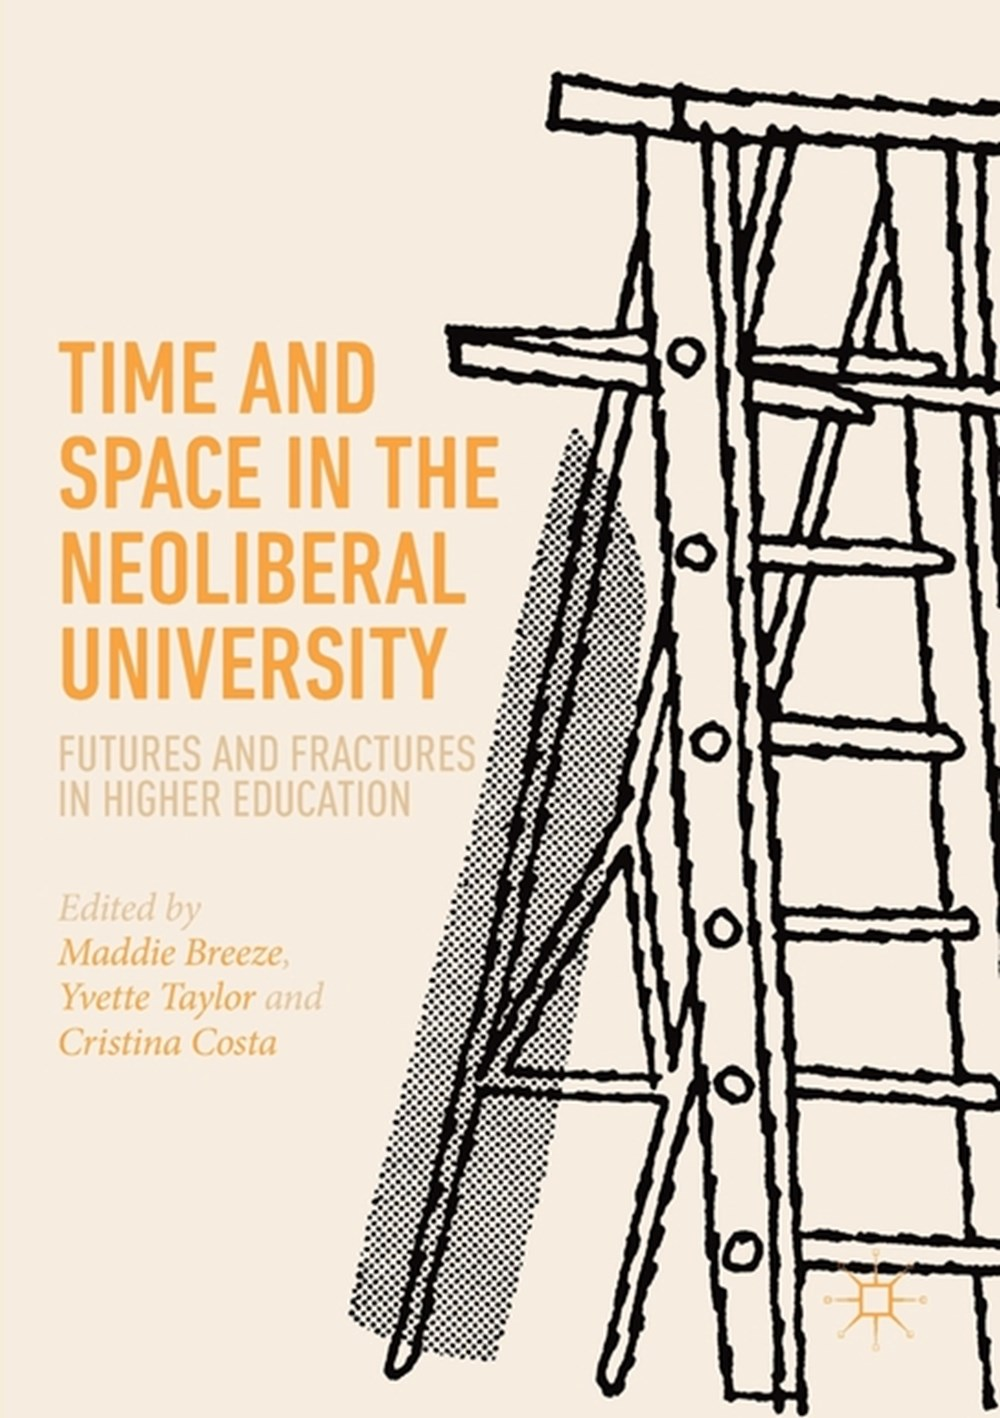 Time and Space in the Neoliberal University Futures and Fractures in Higher Education